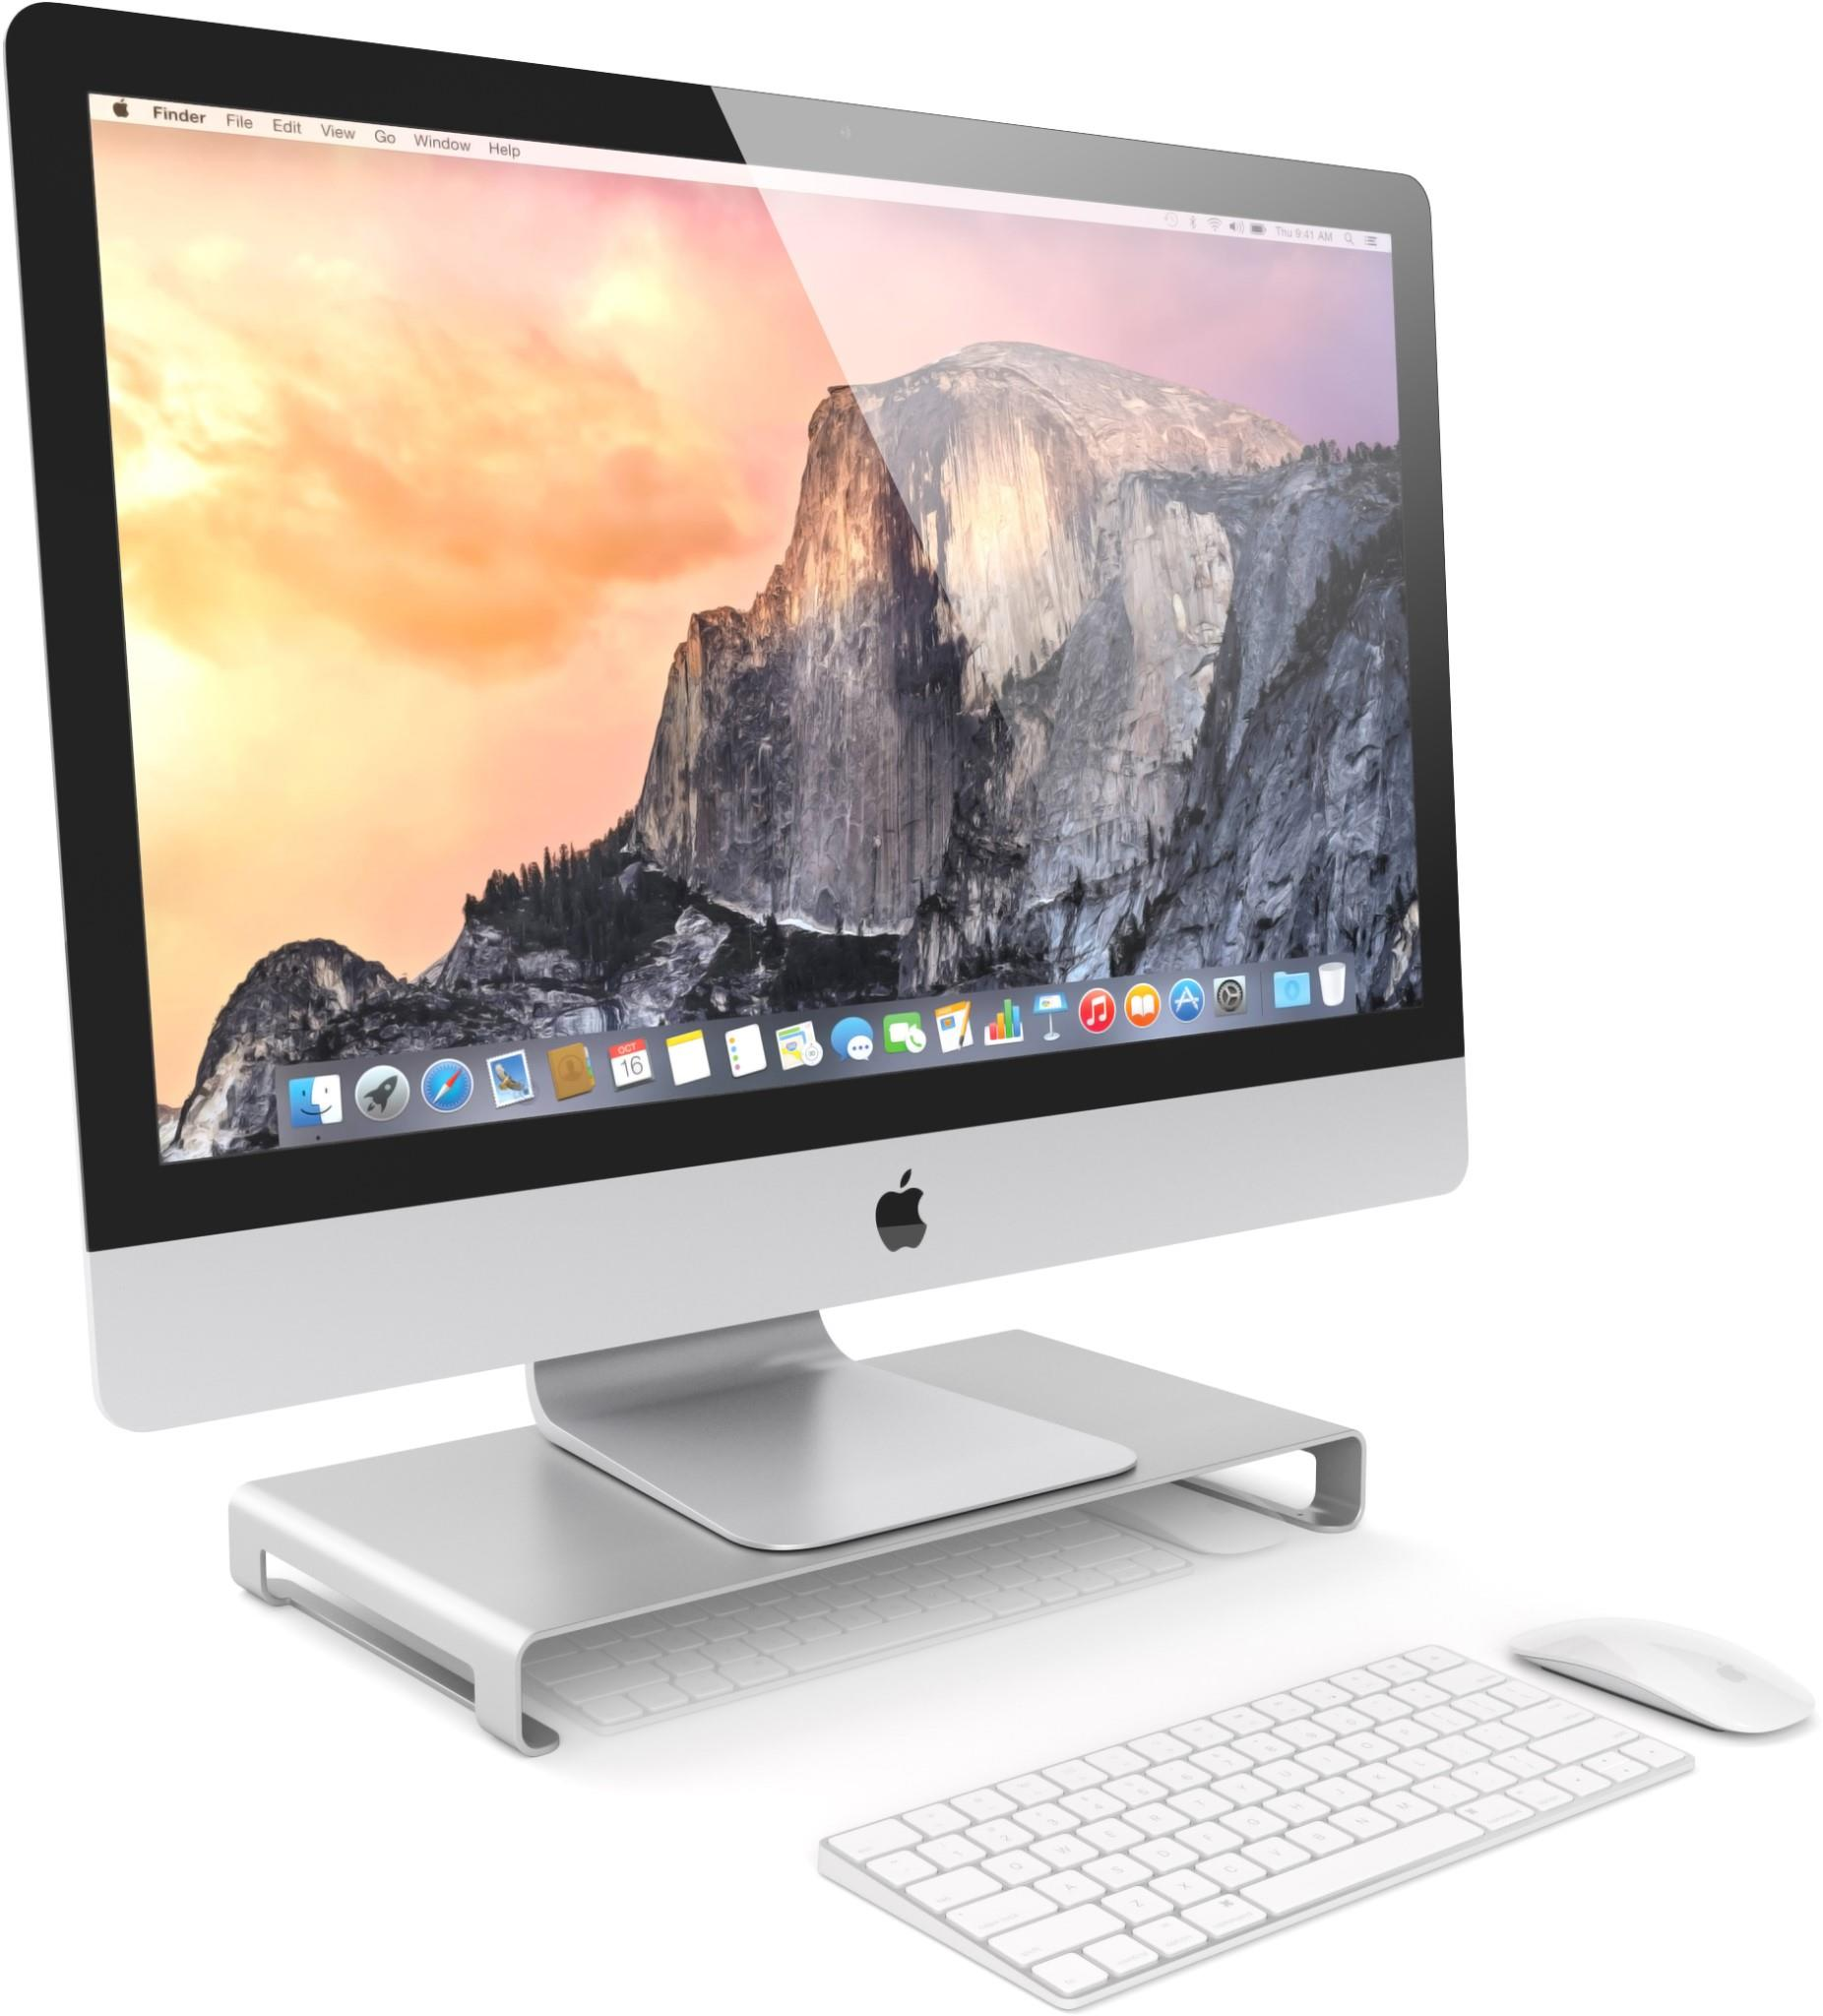 Satechi Aluminium Slim Monitor Stand for Desktop Computers Laptops up to 14kg